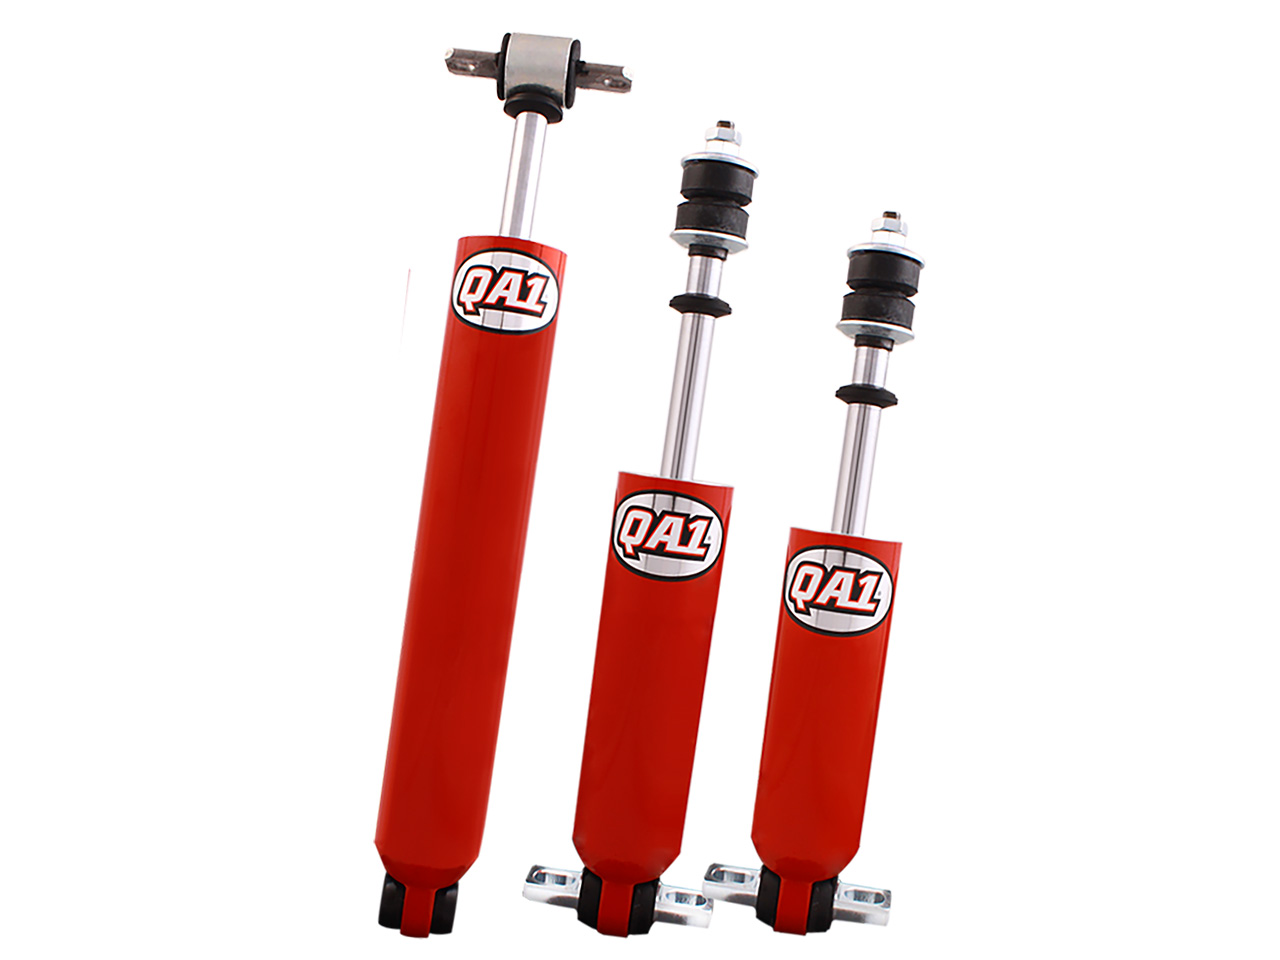 Picture of QA1 53 Series Stock Mount Shocks